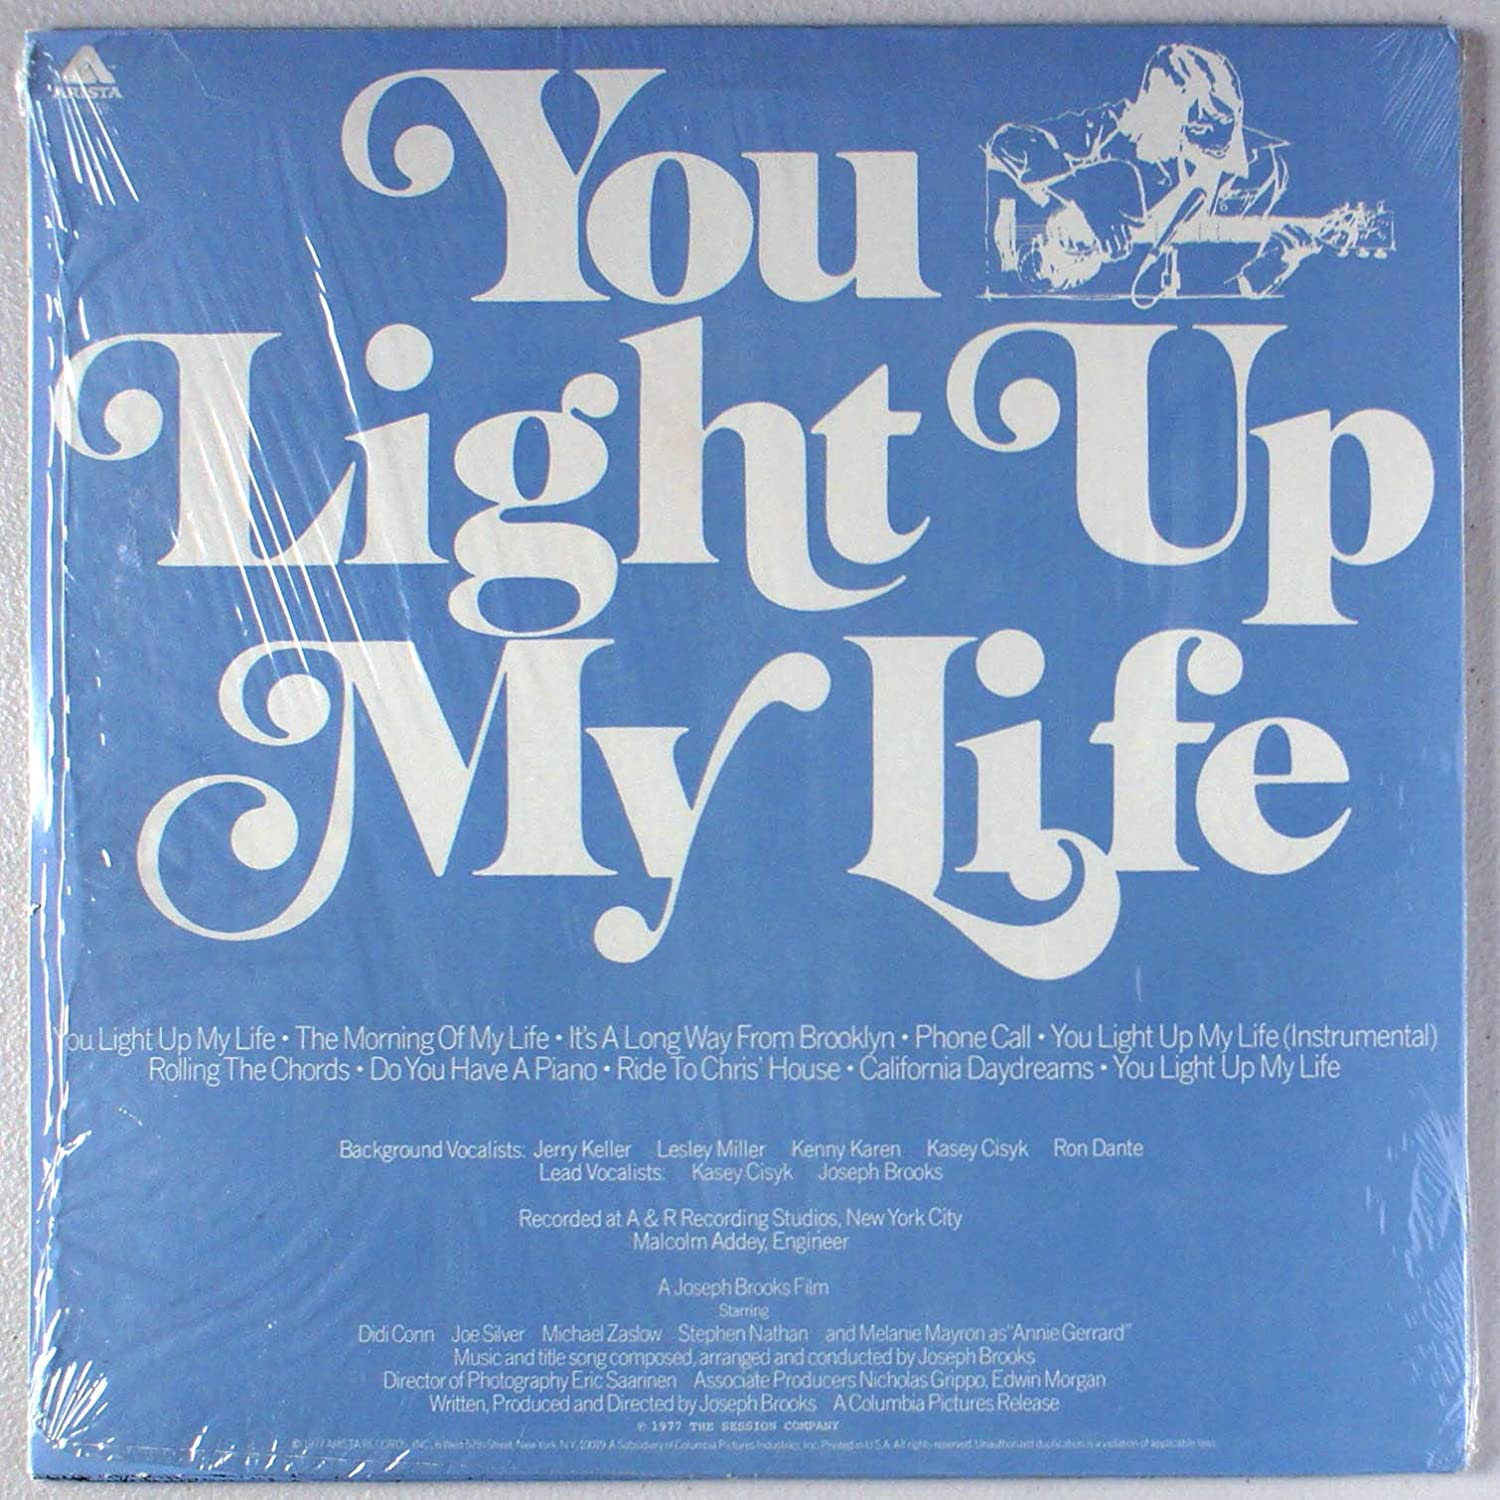 Joseph Brooks, Kasey Cisyk - You Light Up My Life: Original Soundtrack - Amazon.com Music